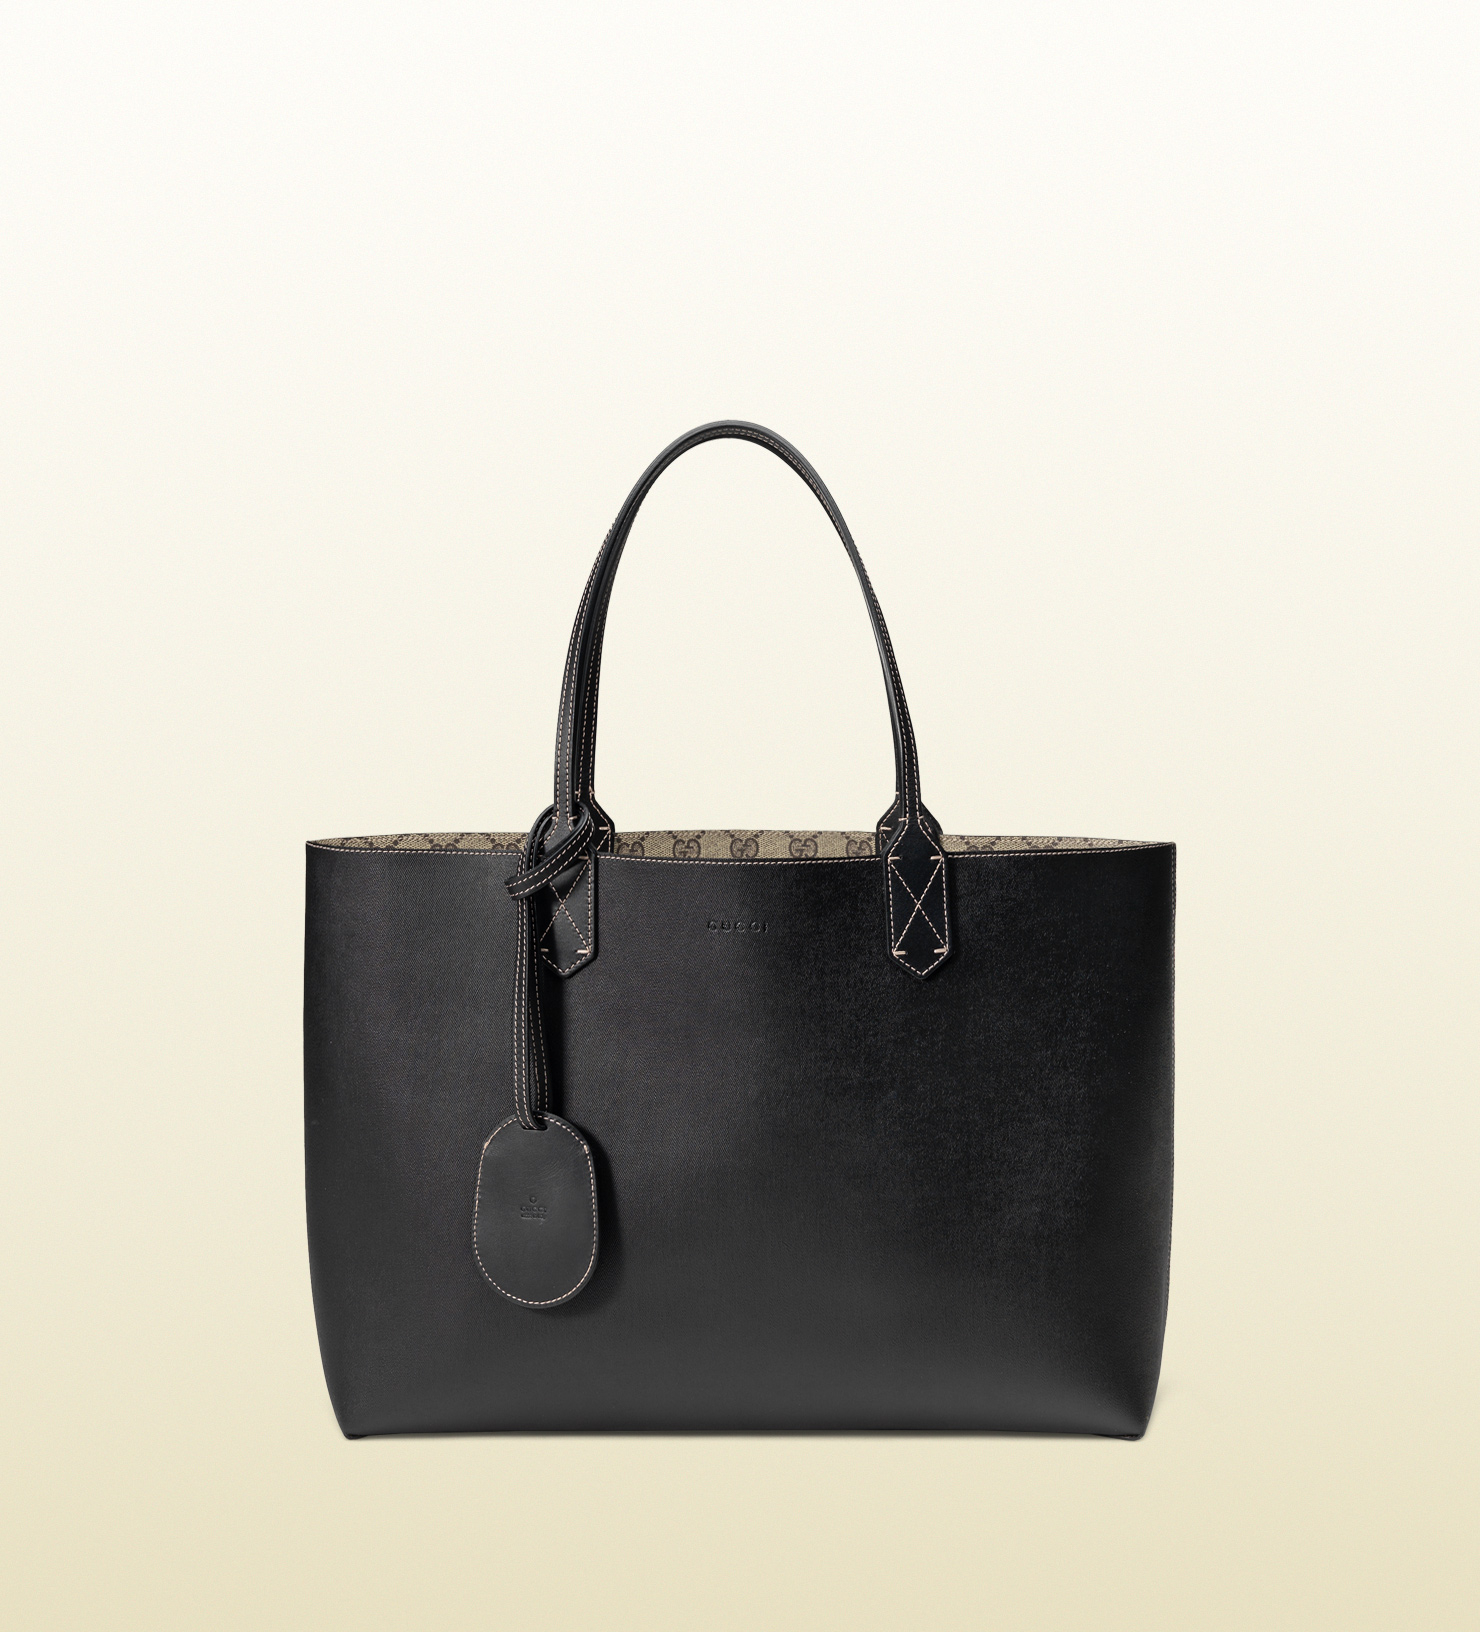 2bc8ba3ada5d Gucci Black Reversible Tote | Stanford Center for Opportunity Policy ...